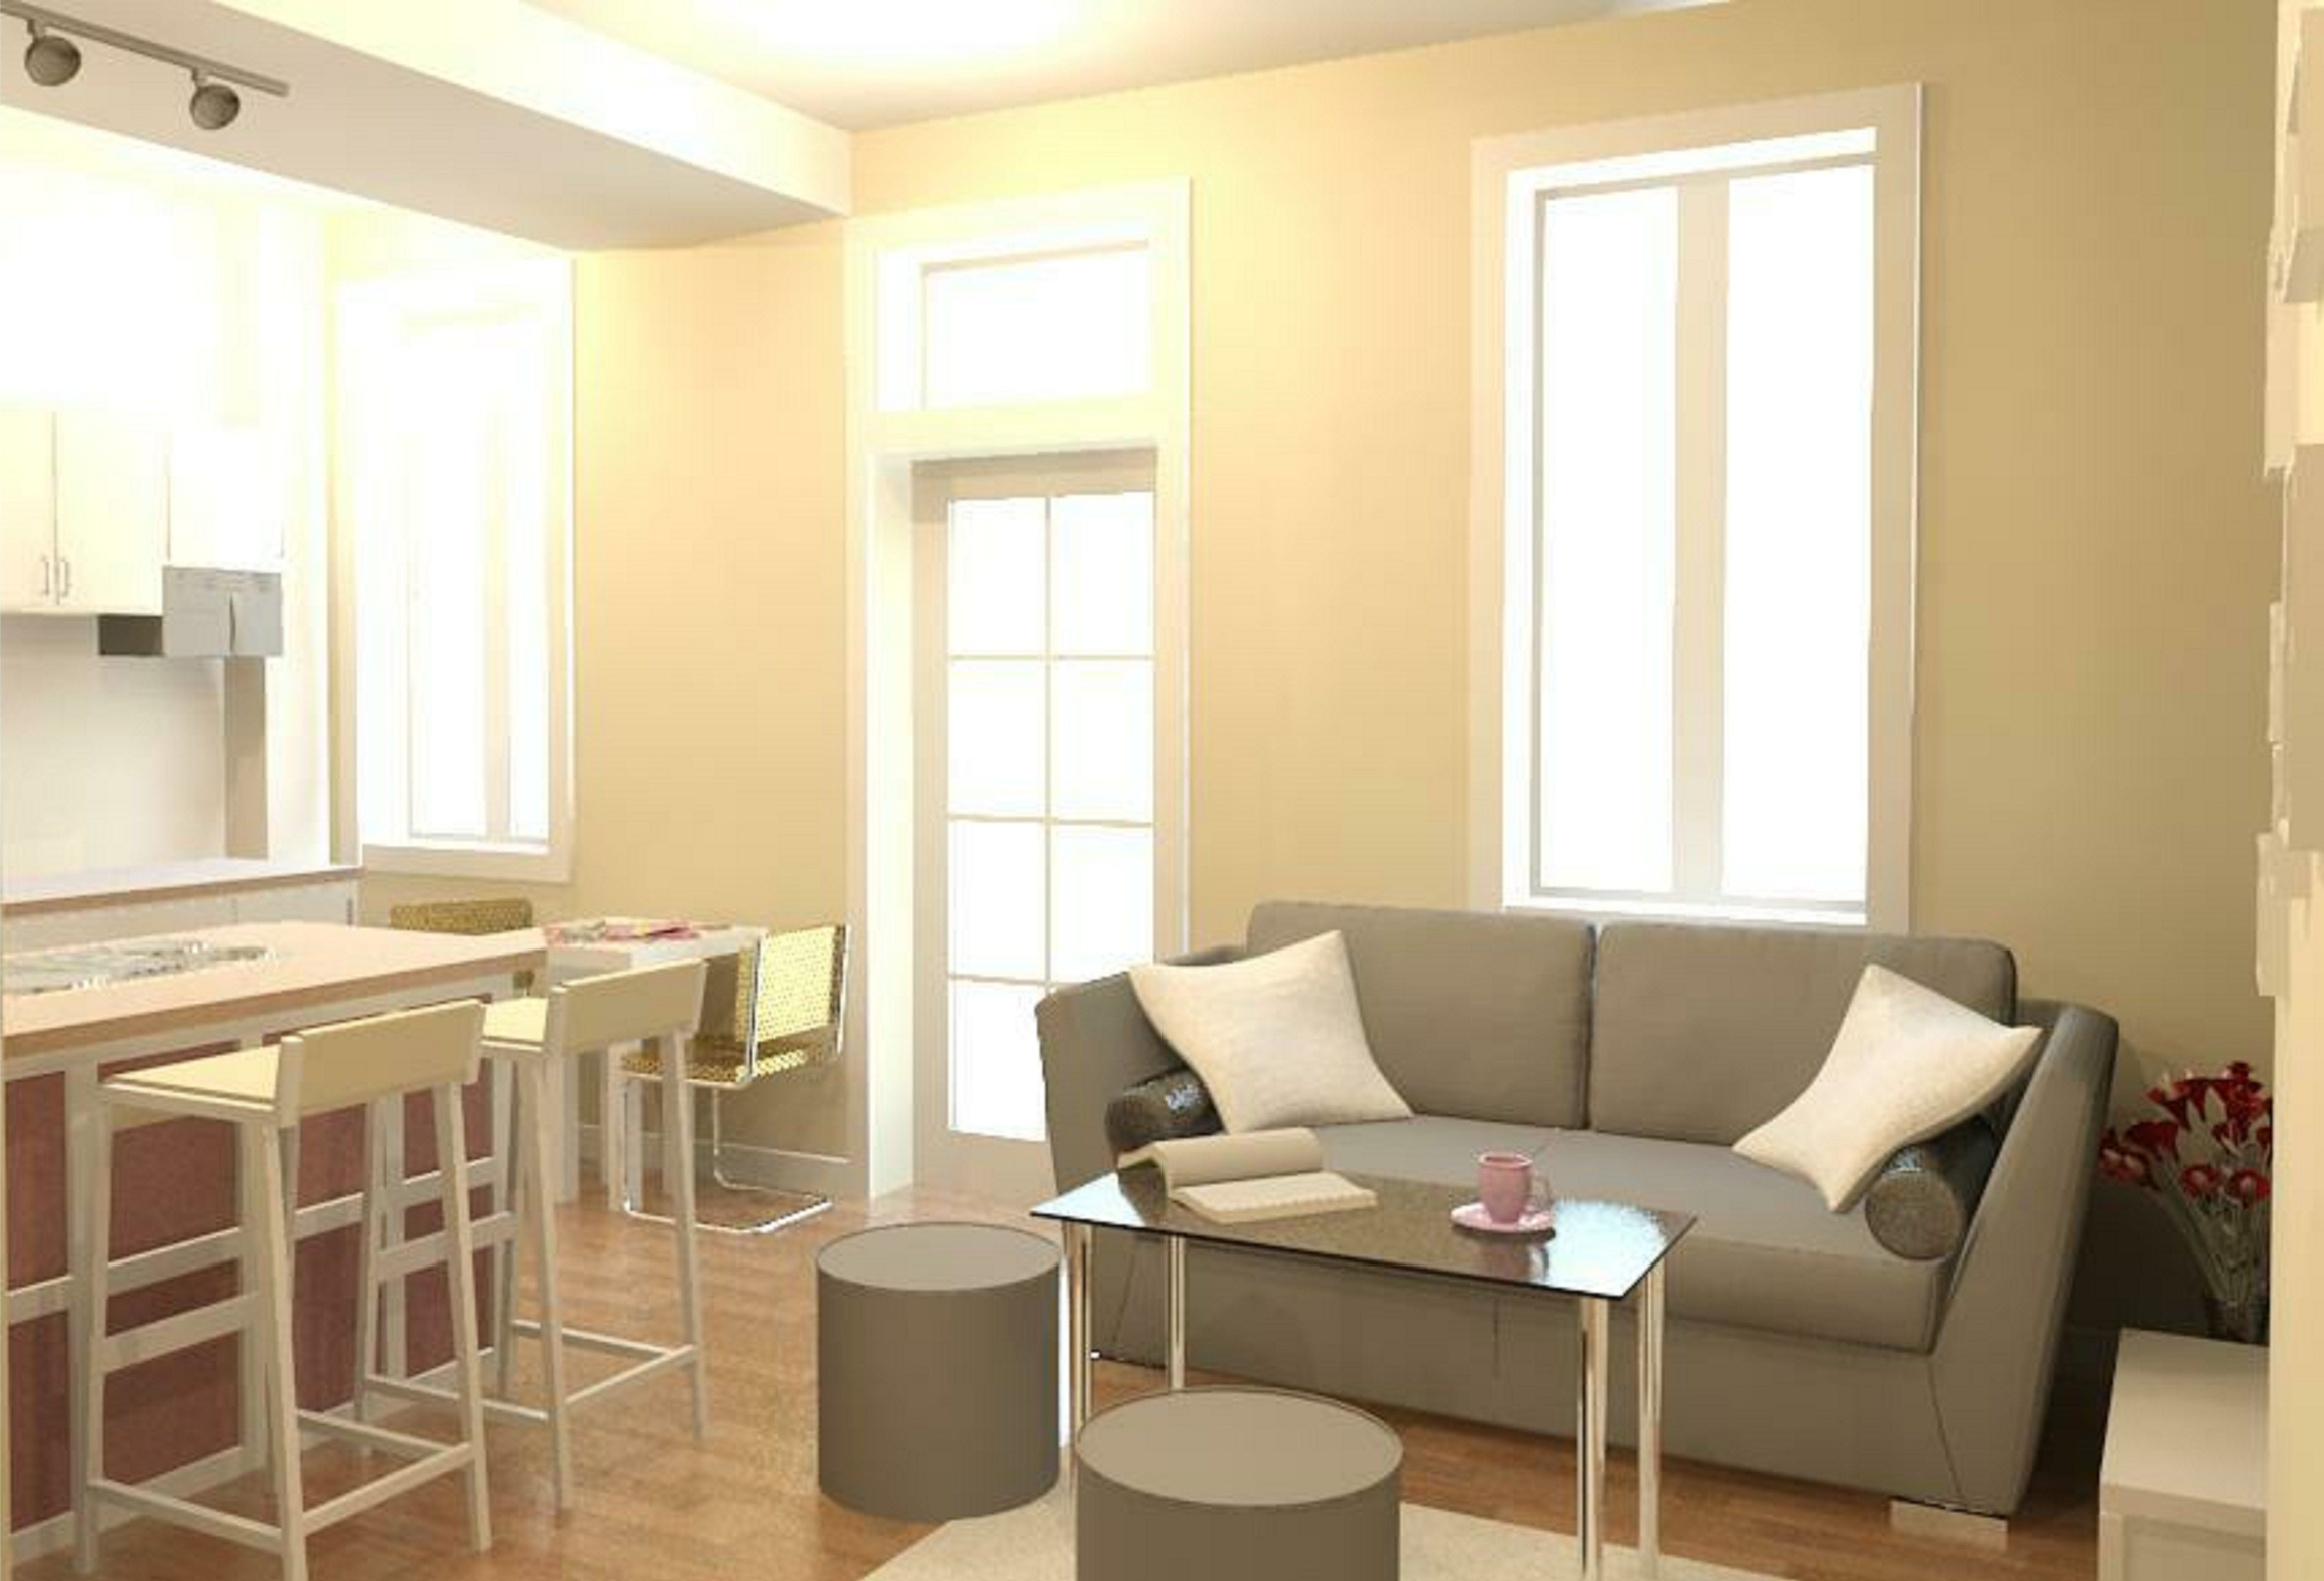 Awesome Beautiful Small Studio Apartment Design Ideas With Ideas Awesome Small  Studio Apartment Decorating Ideas With Unique